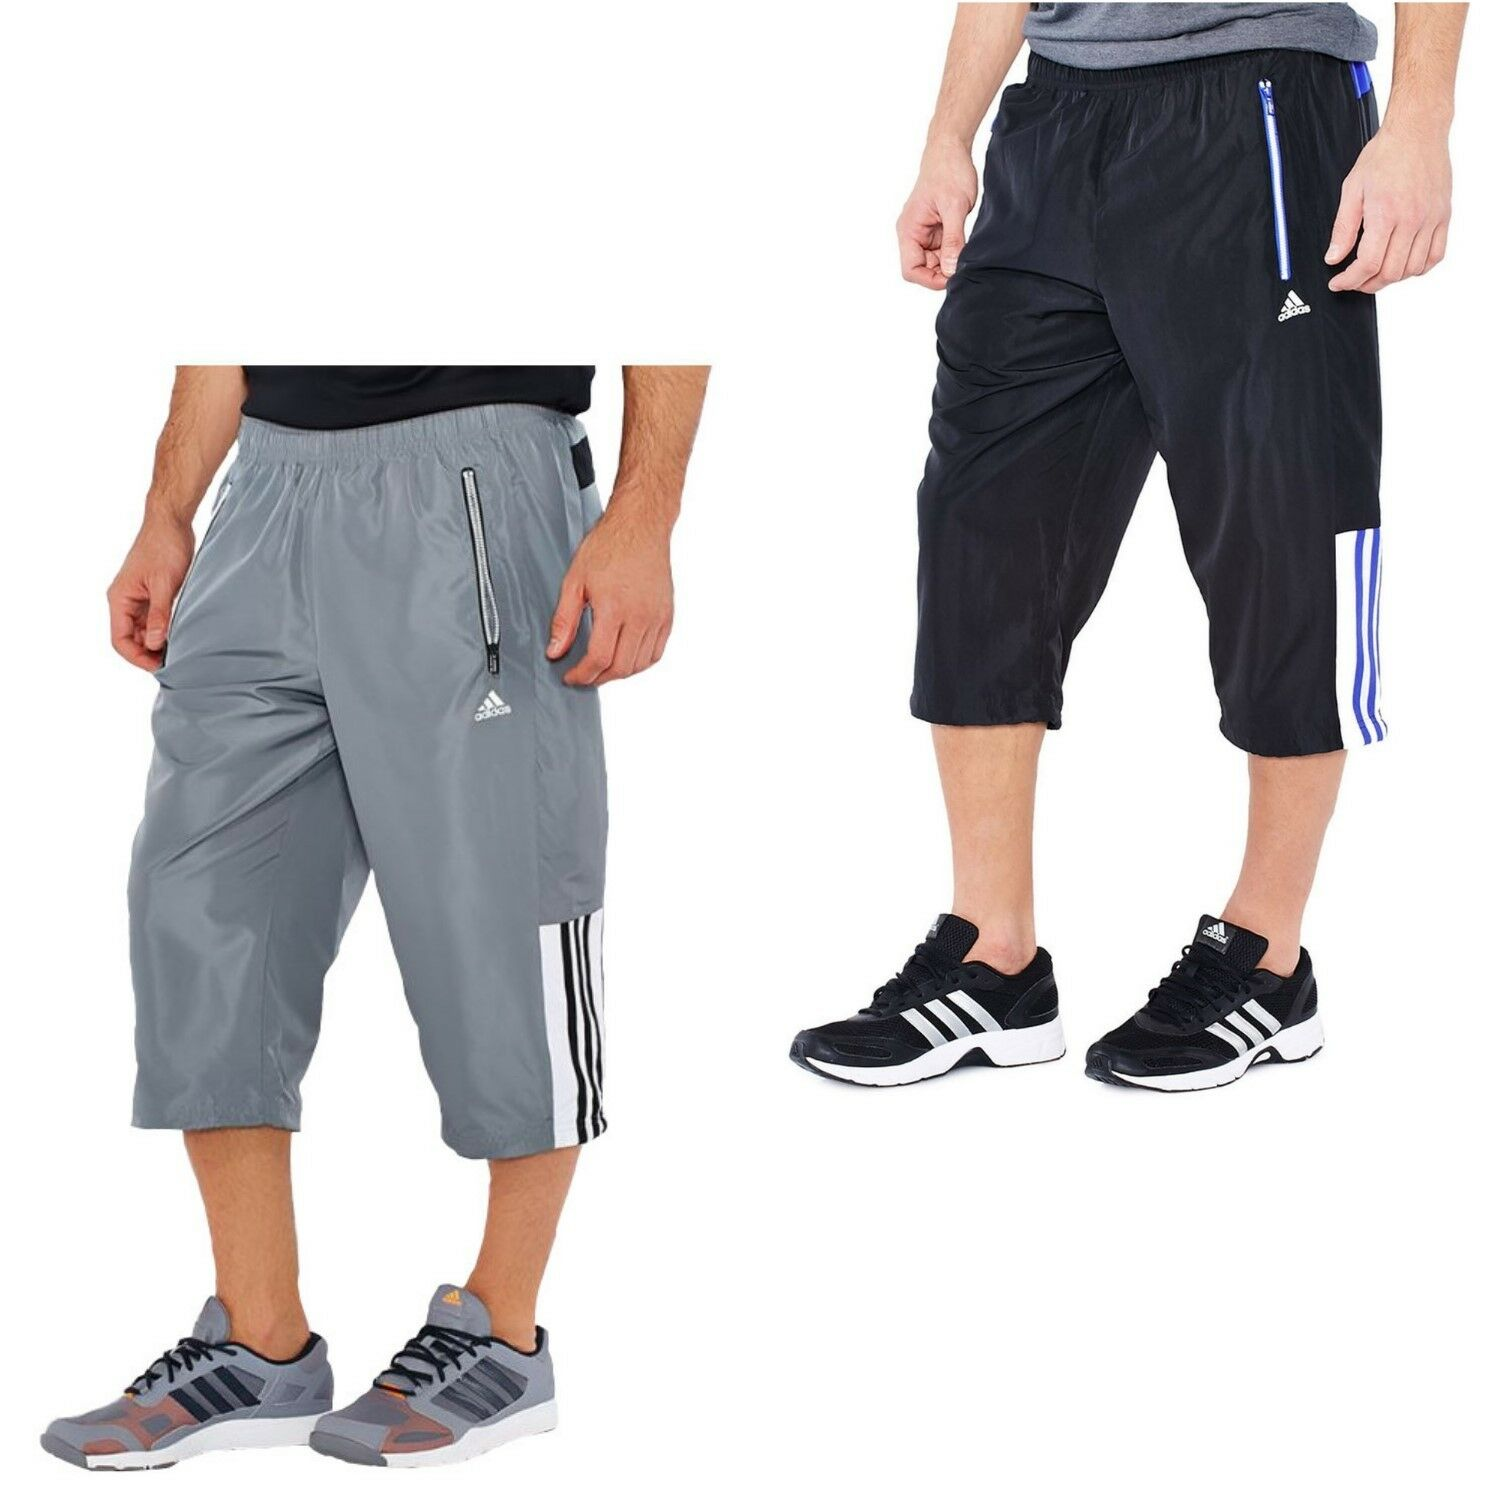 Hose Hose Herrenherren Adidas Herrenherren Adidas Hose Adidas With With 3Aq4jL5R